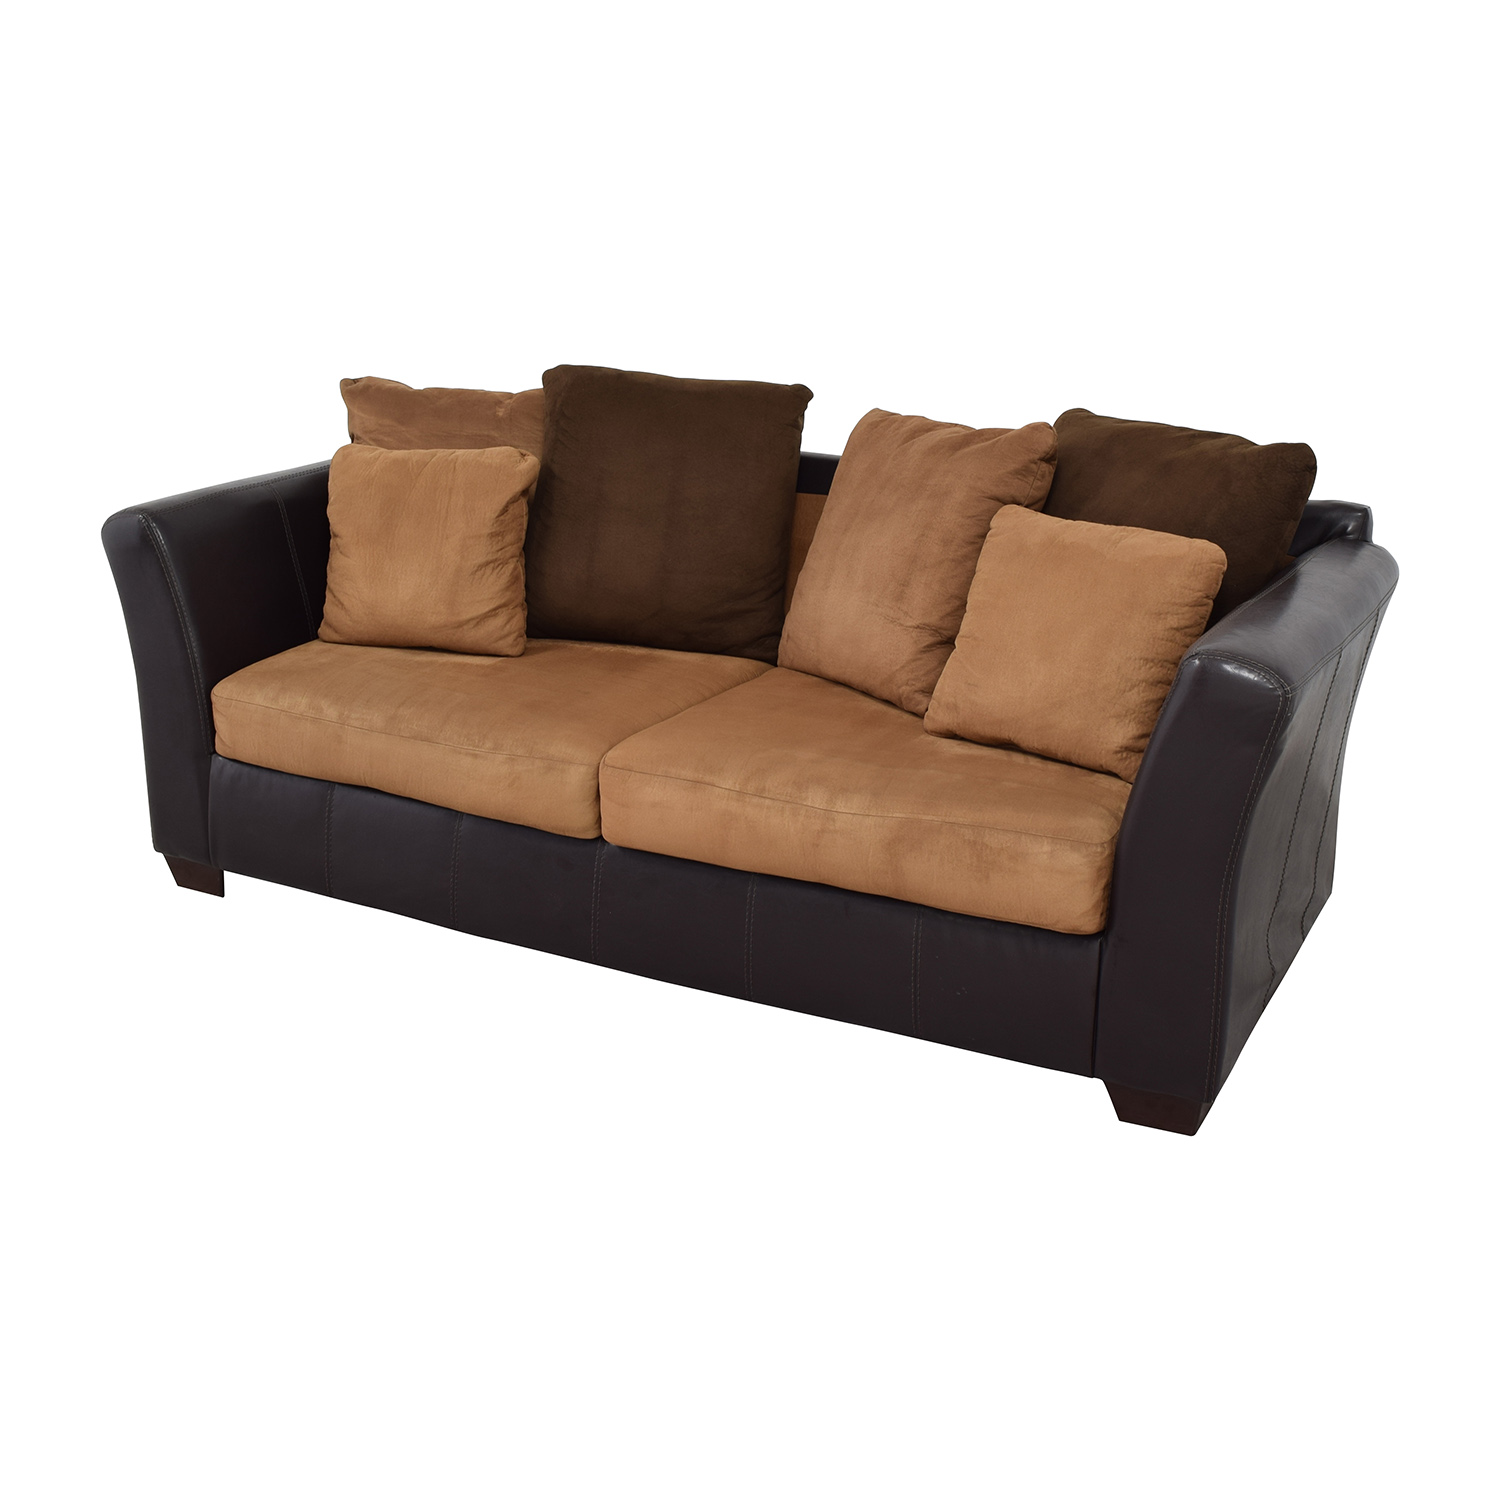 43 Off Ashley Furniture Ashley Furniture Sofa With Brown Throw Pillows Sofas